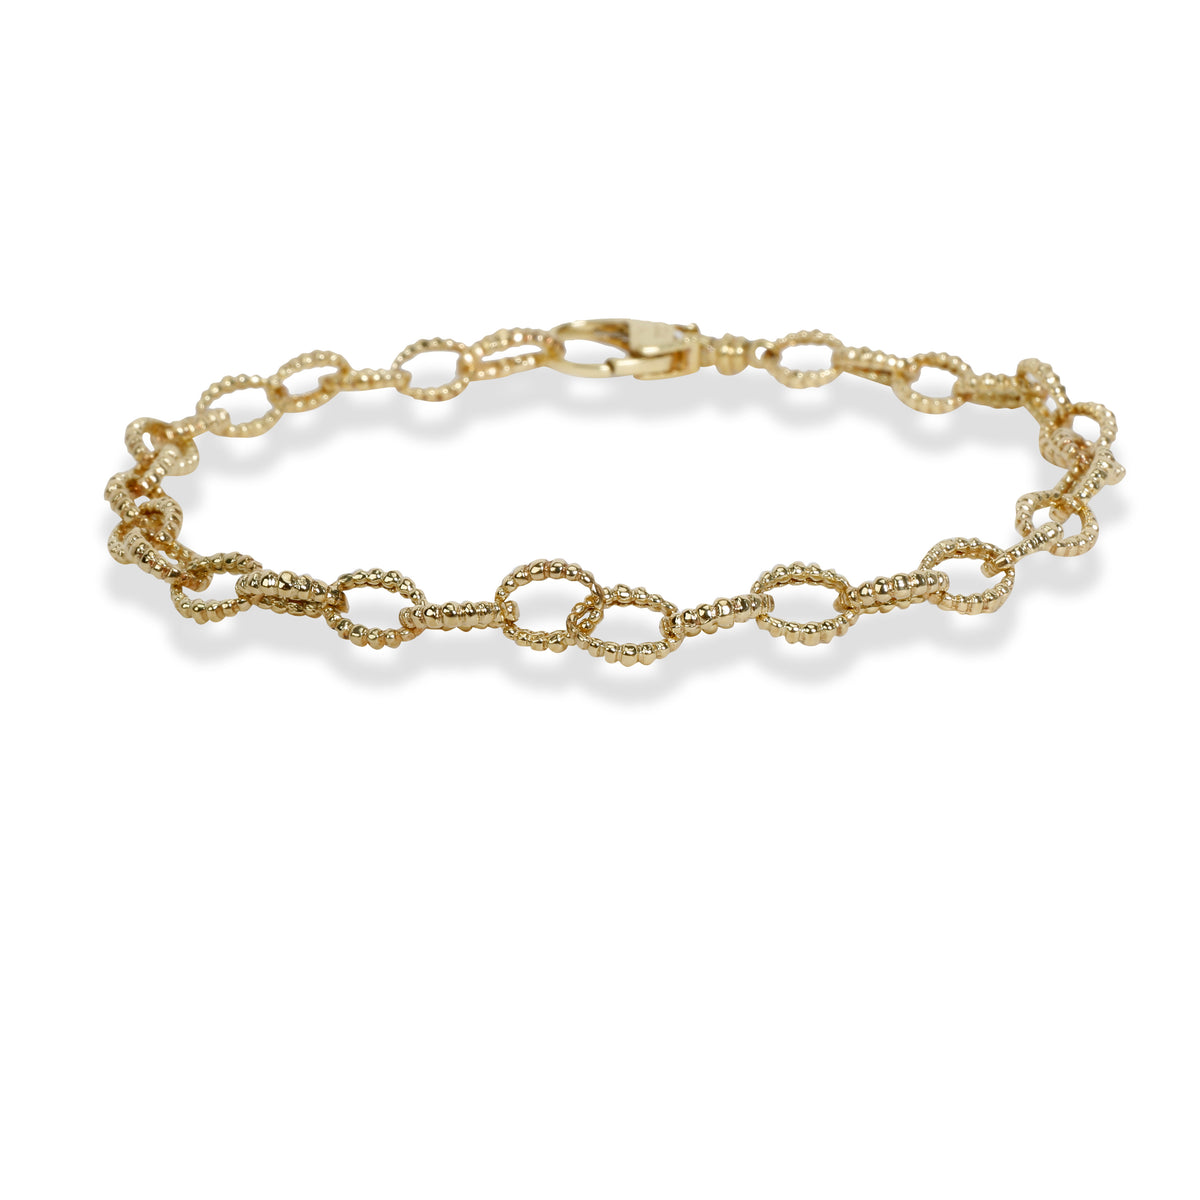 Lagos Caviar Collection Fluted Oval Link Bracelet in 18K Yellow Gold